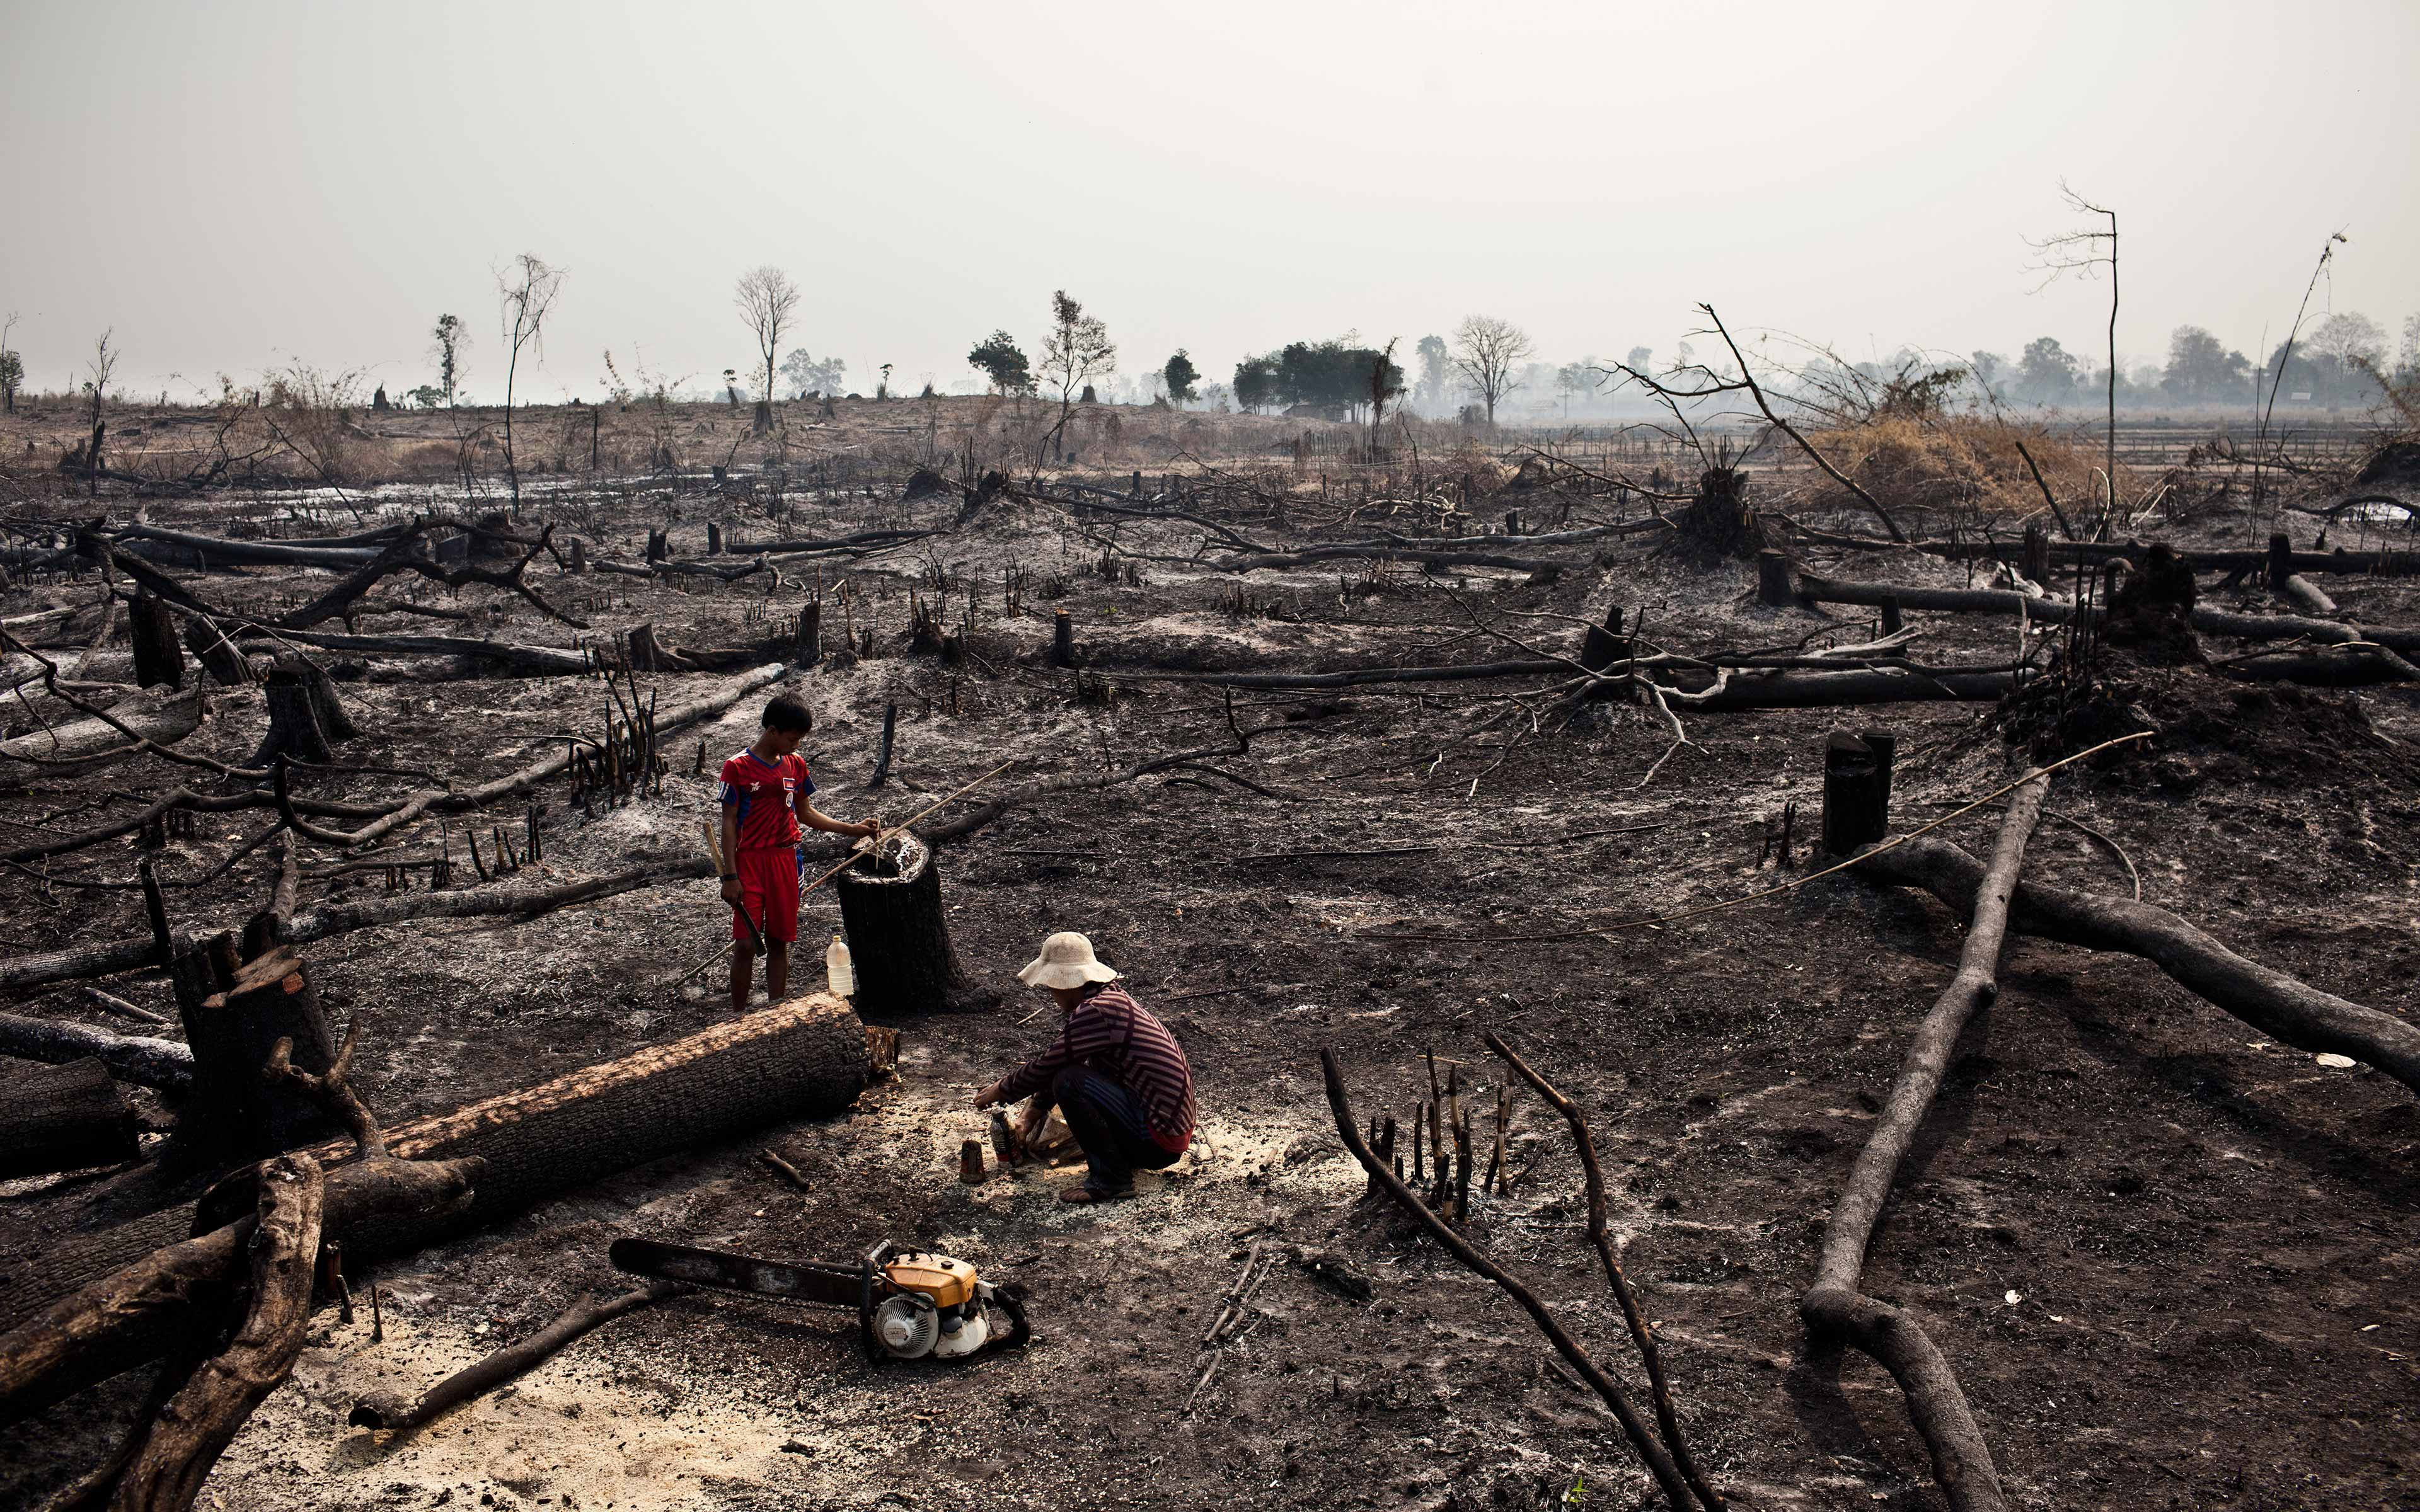 Ratanakiri province in Cambodia is losing its forest resources at an alarming rate, and indigenous communities that rely on them are sometimes affected in ways that threaten their livelihoods and culture.